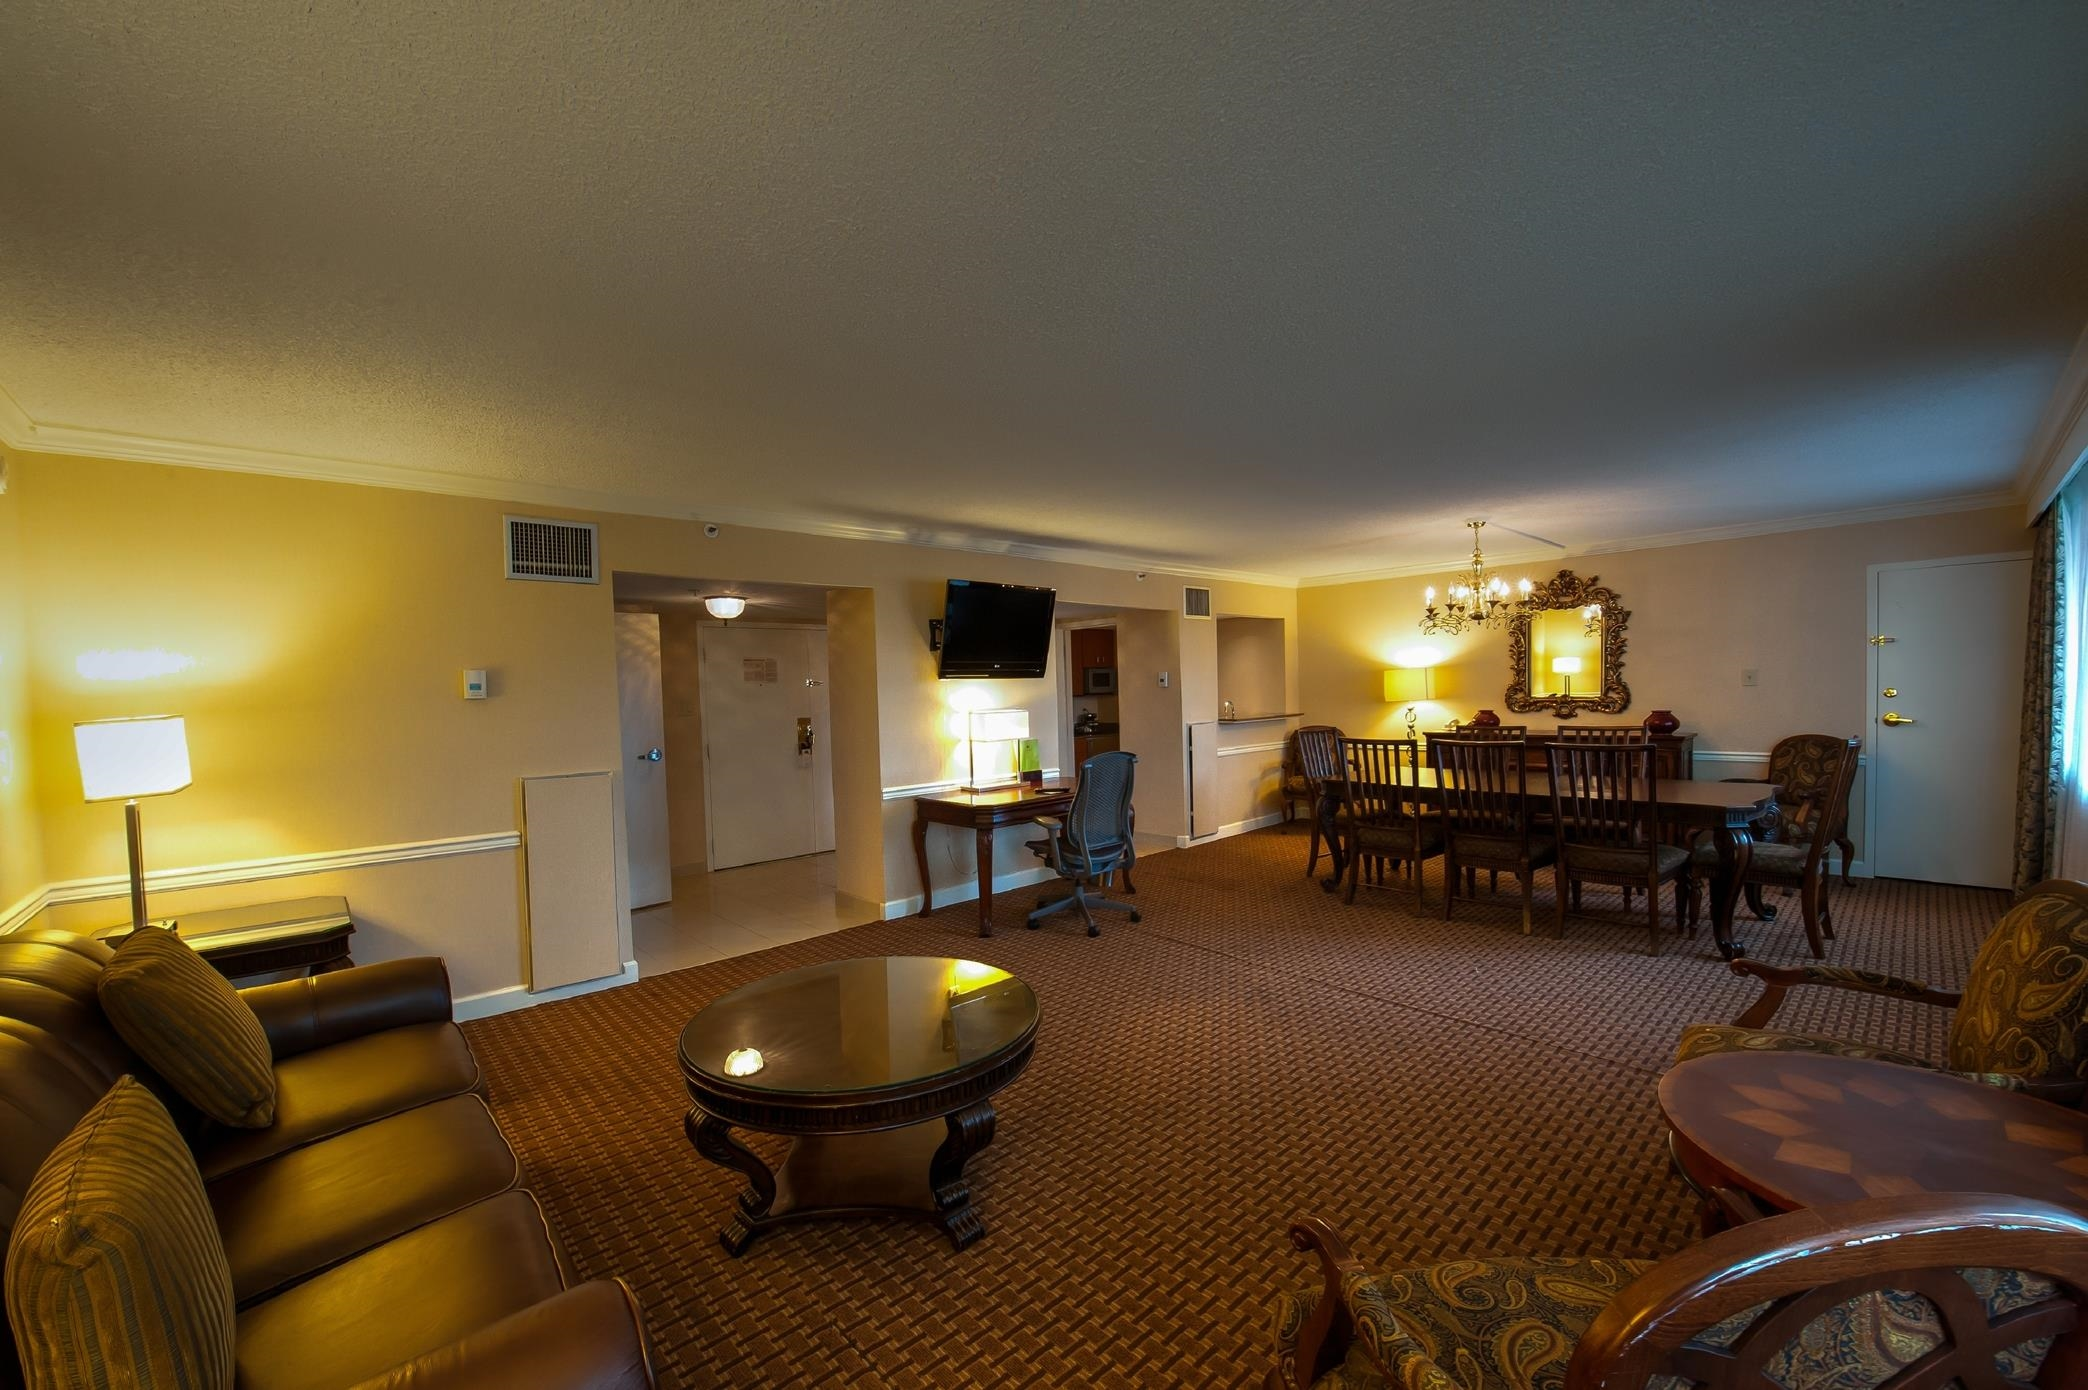 DoubleTree by Hilton Hotel Baltimore North - Pikesville image 23